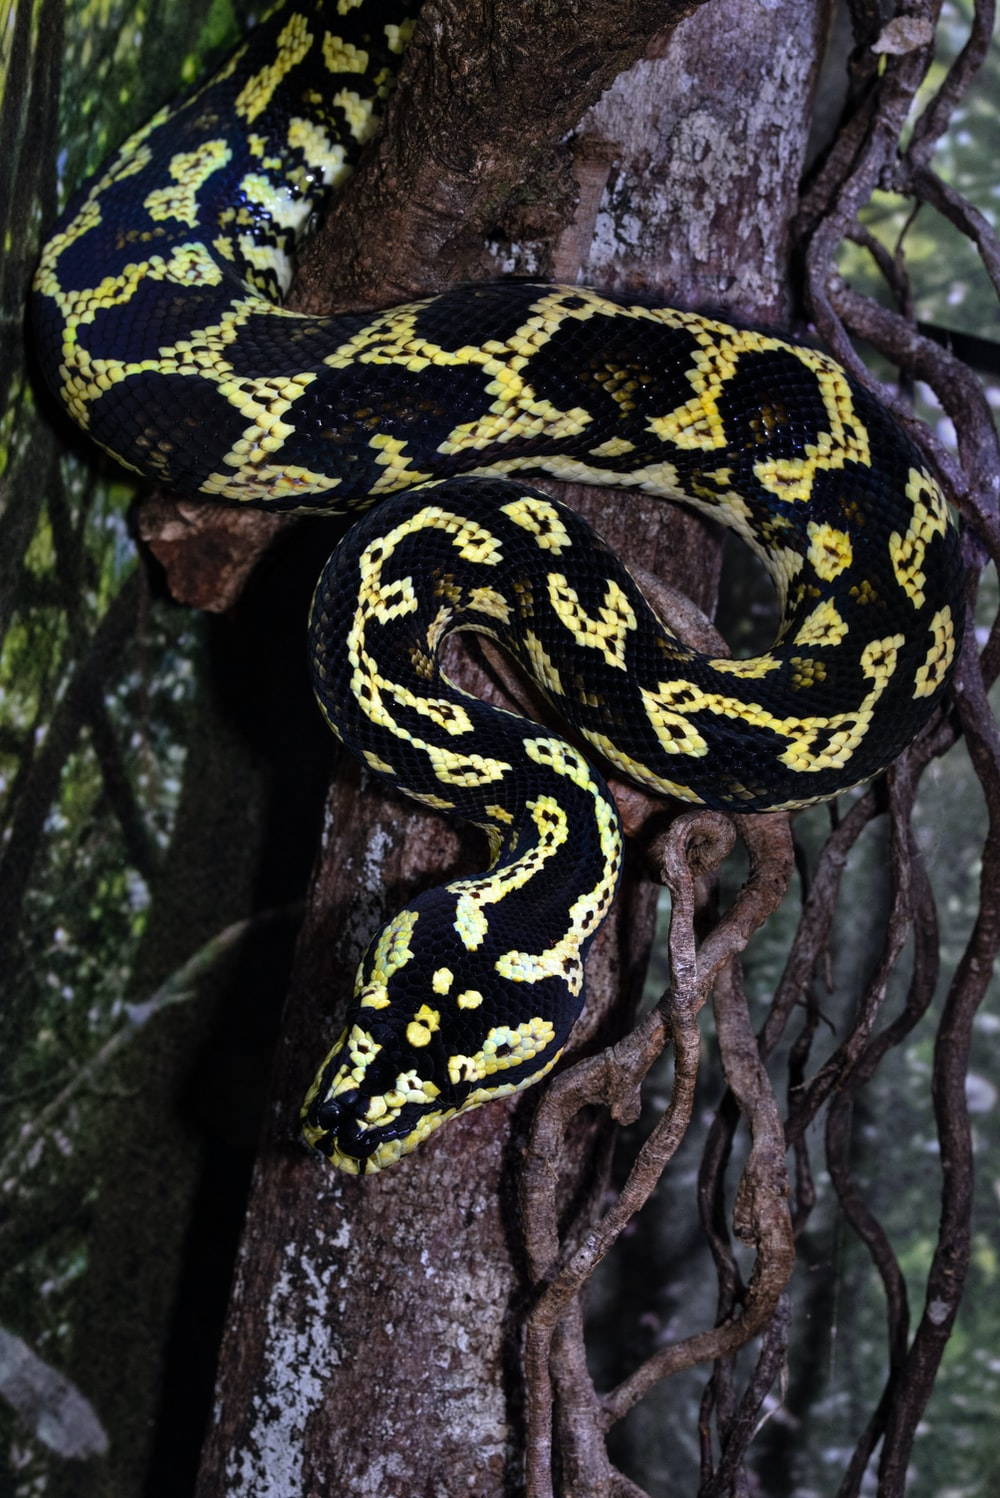 black and yellow snake on brown tree branch